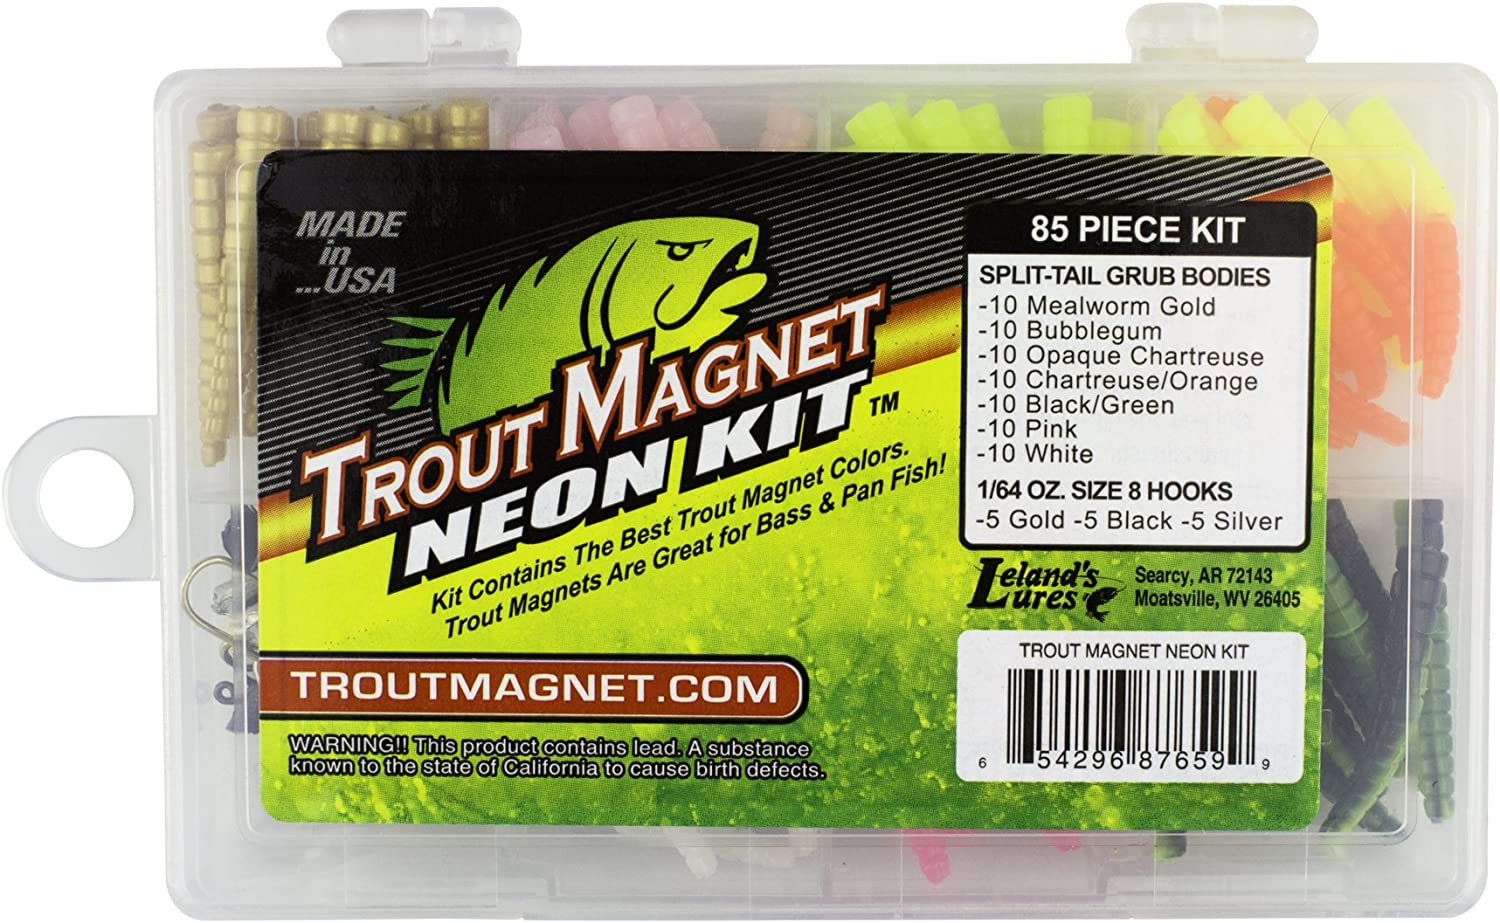 Leland Lures Trout Magnet Neon Kit